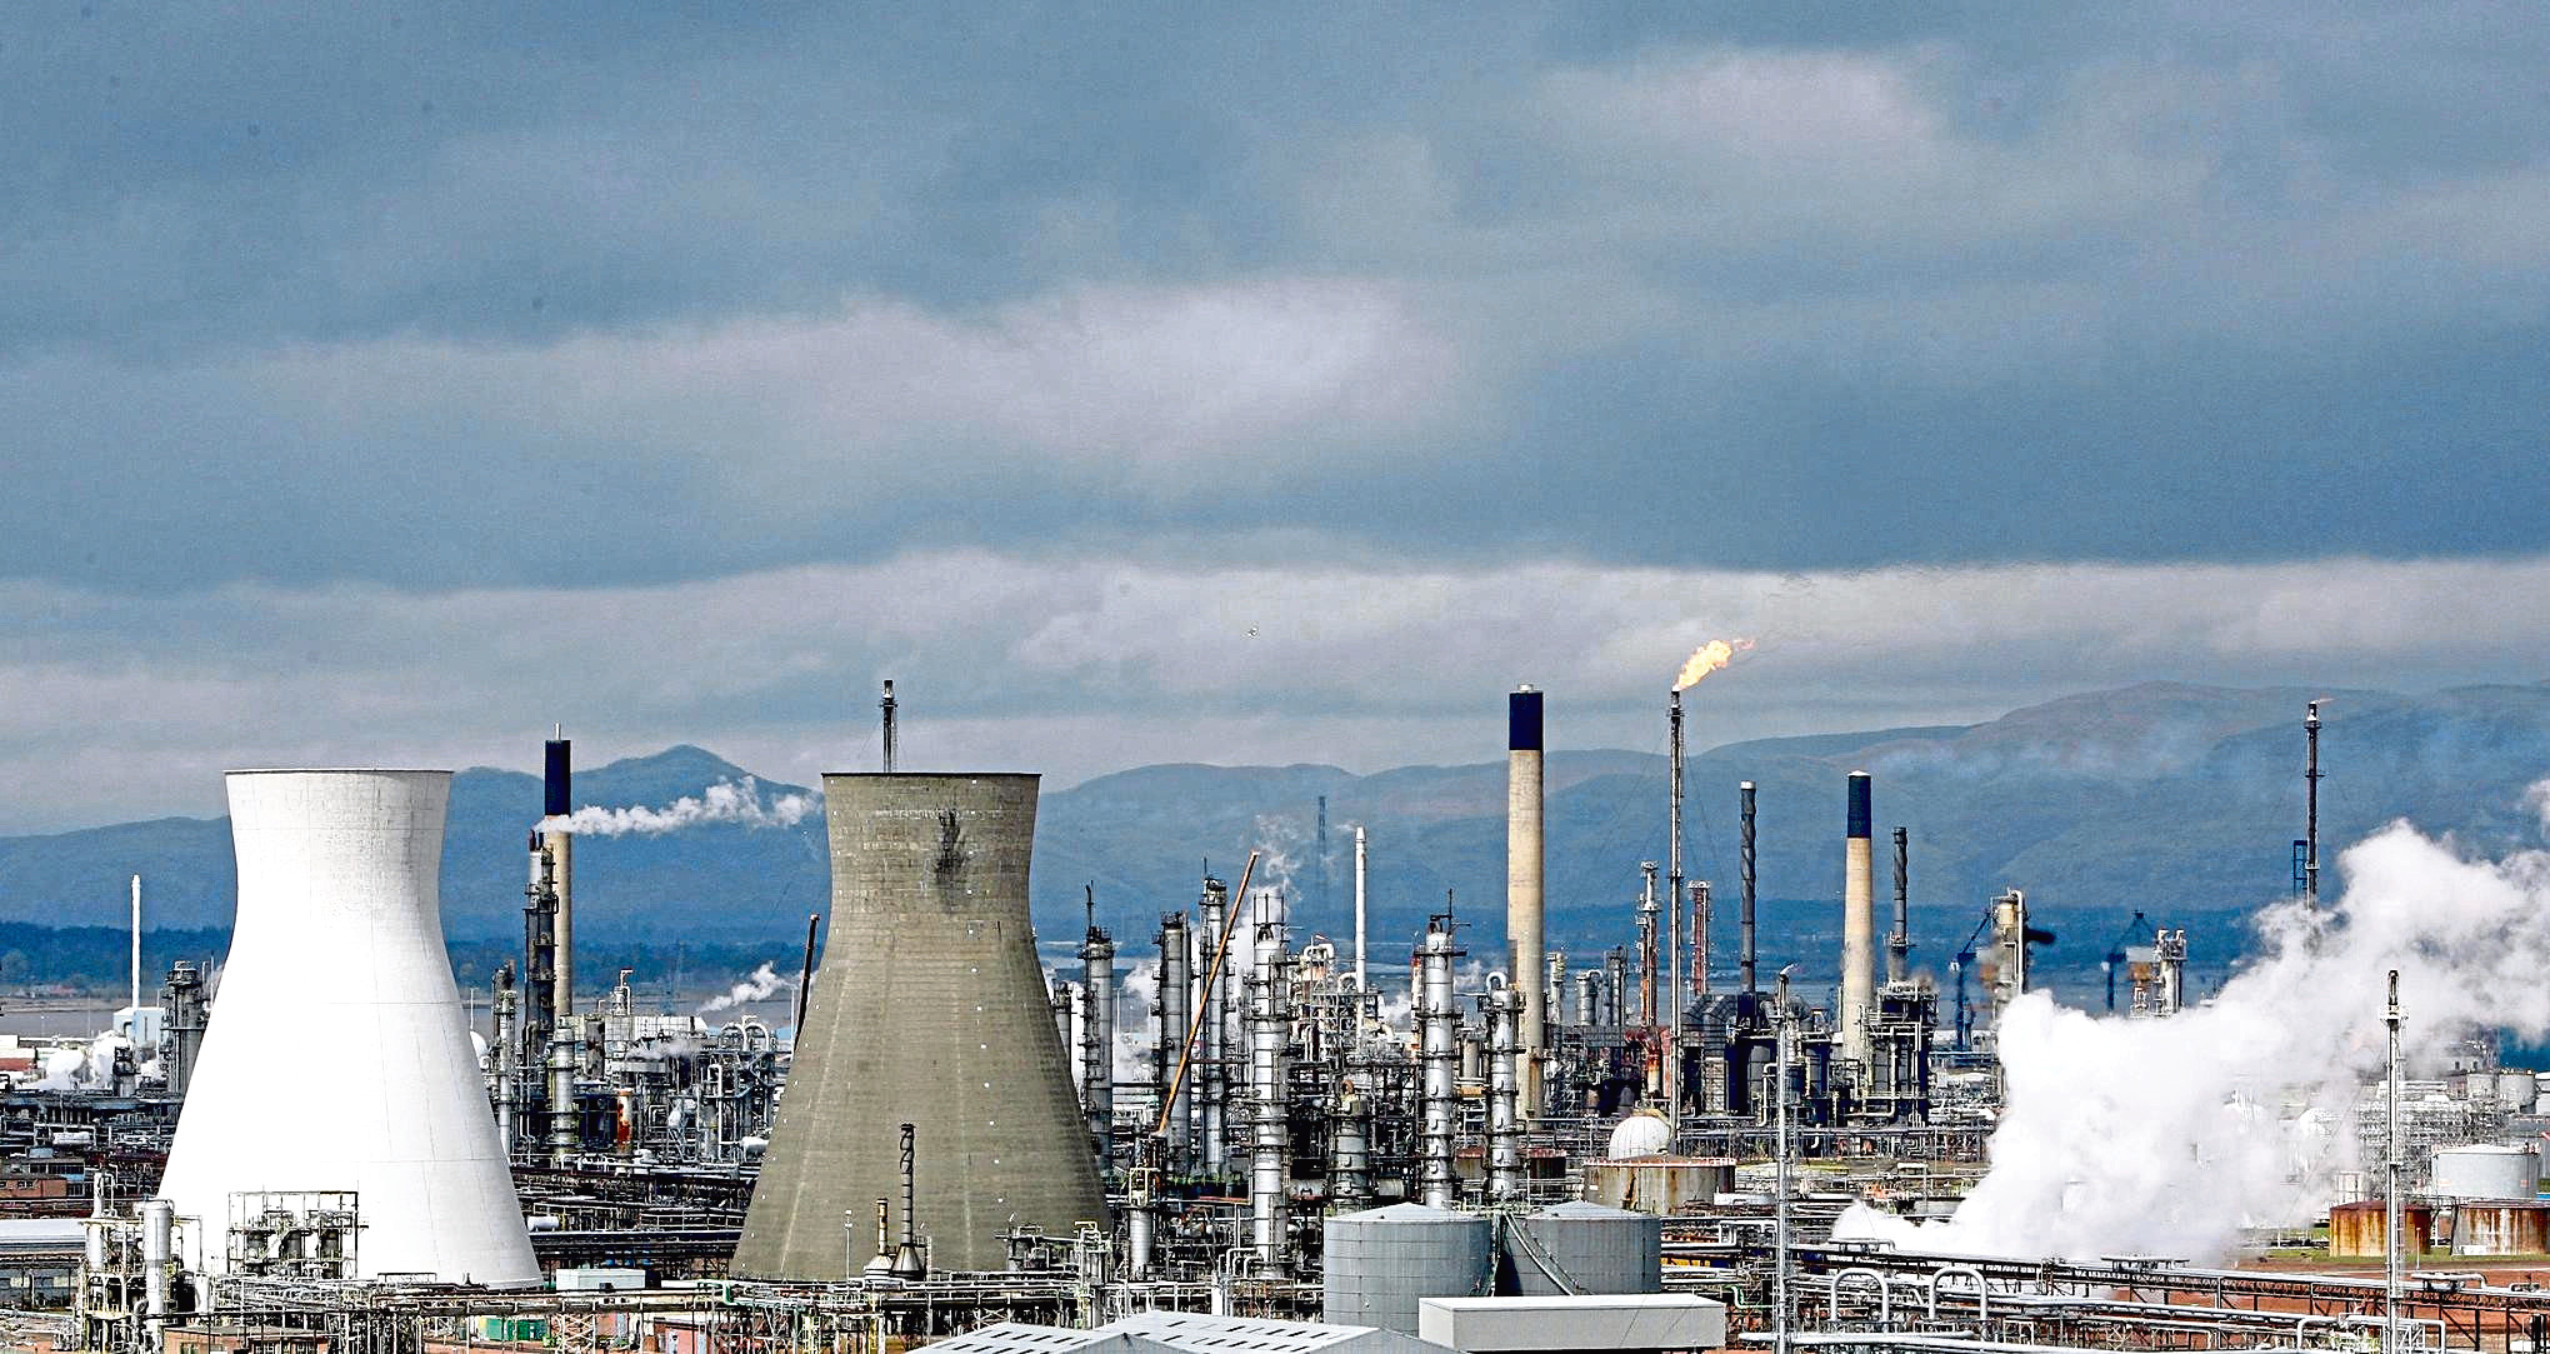 A general view of the refinery at Grangemouth. Picture: PA